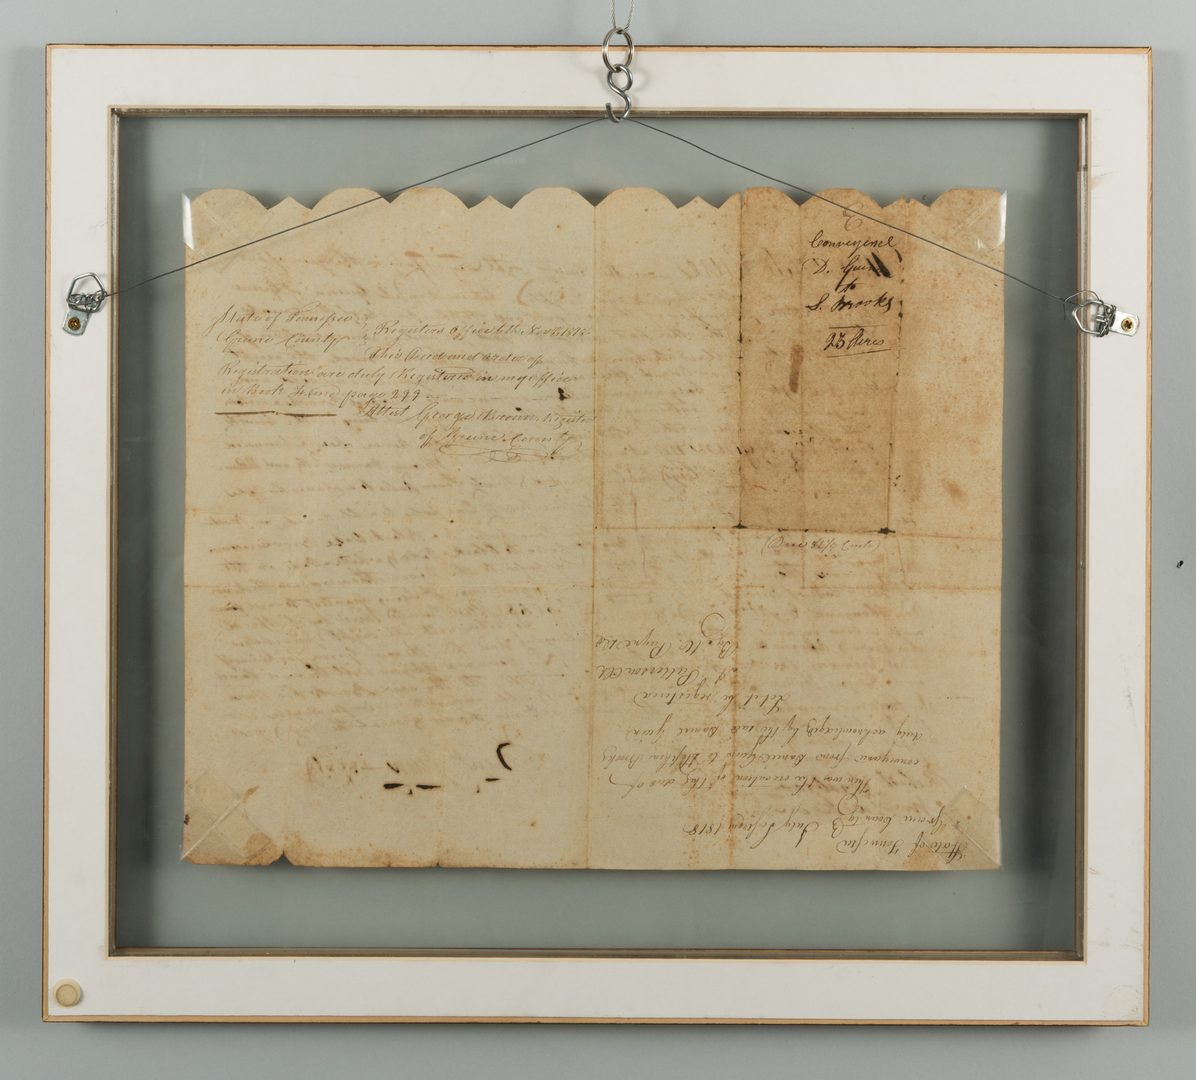 Lot 196: East TN Political Broadside, 1857 and Wm. Dickson Signed Land Indenture, 1818